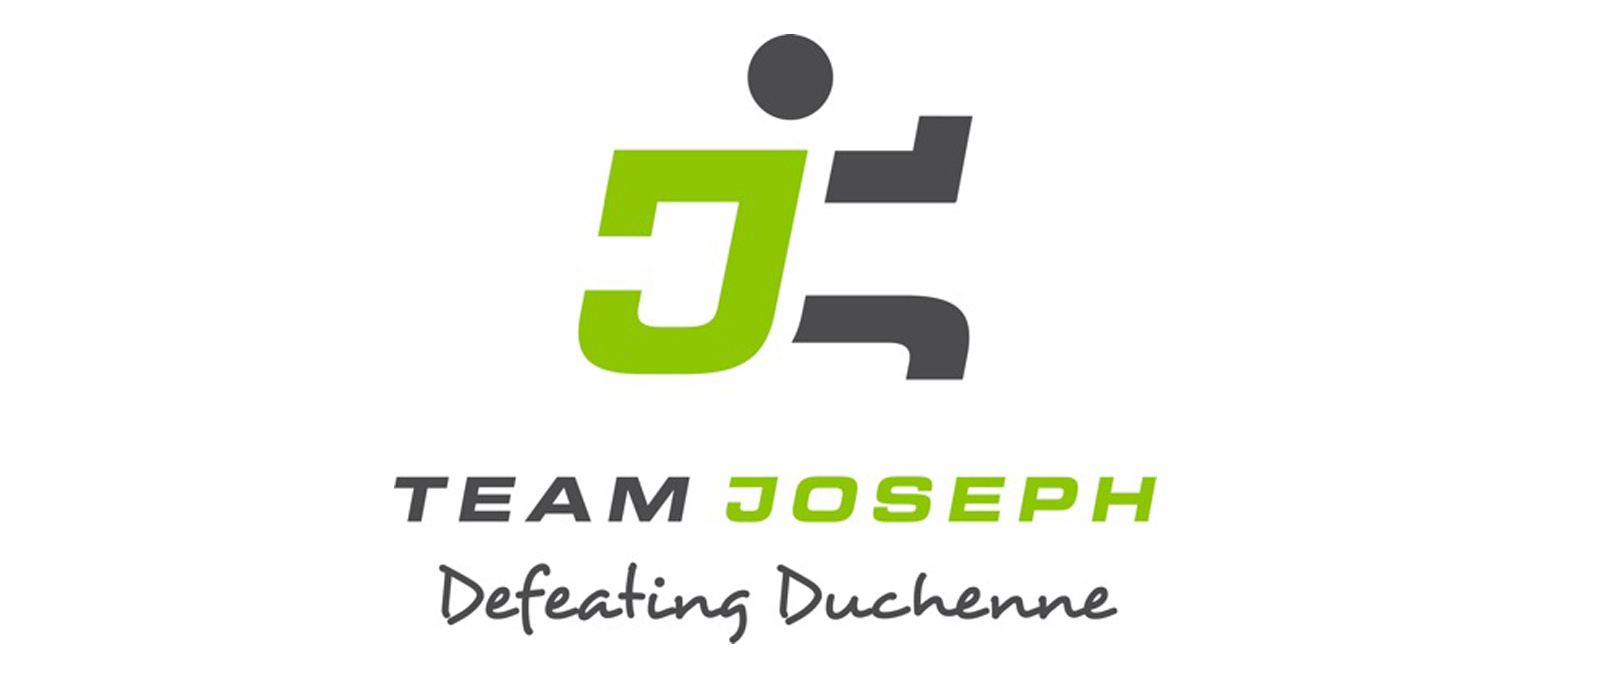 Team Joseph Website.jpg